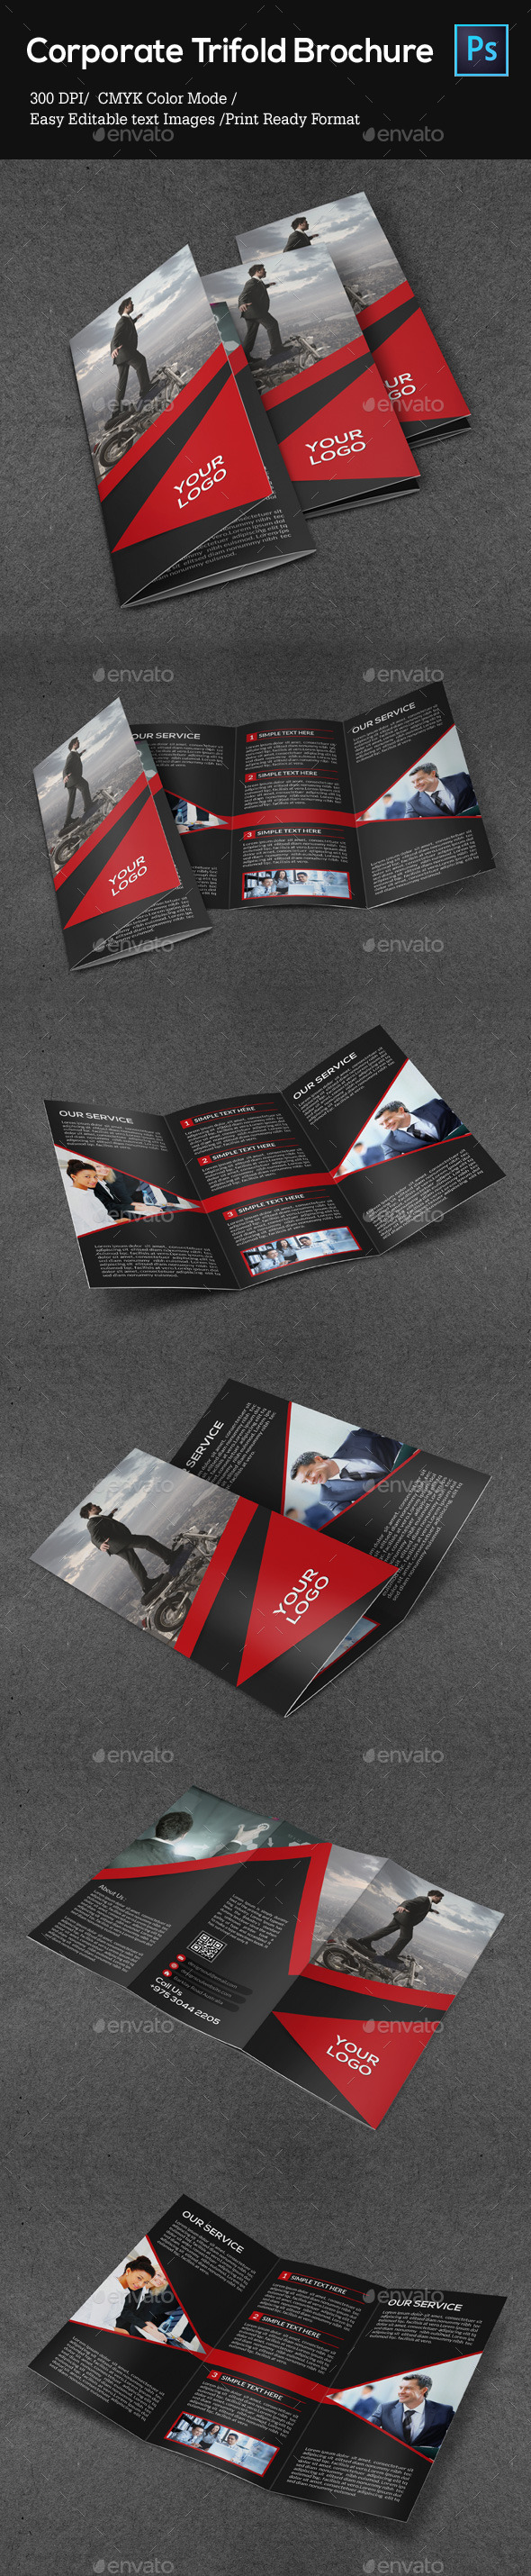 GraphicRiver Corporate Trifold Brochure 8954756